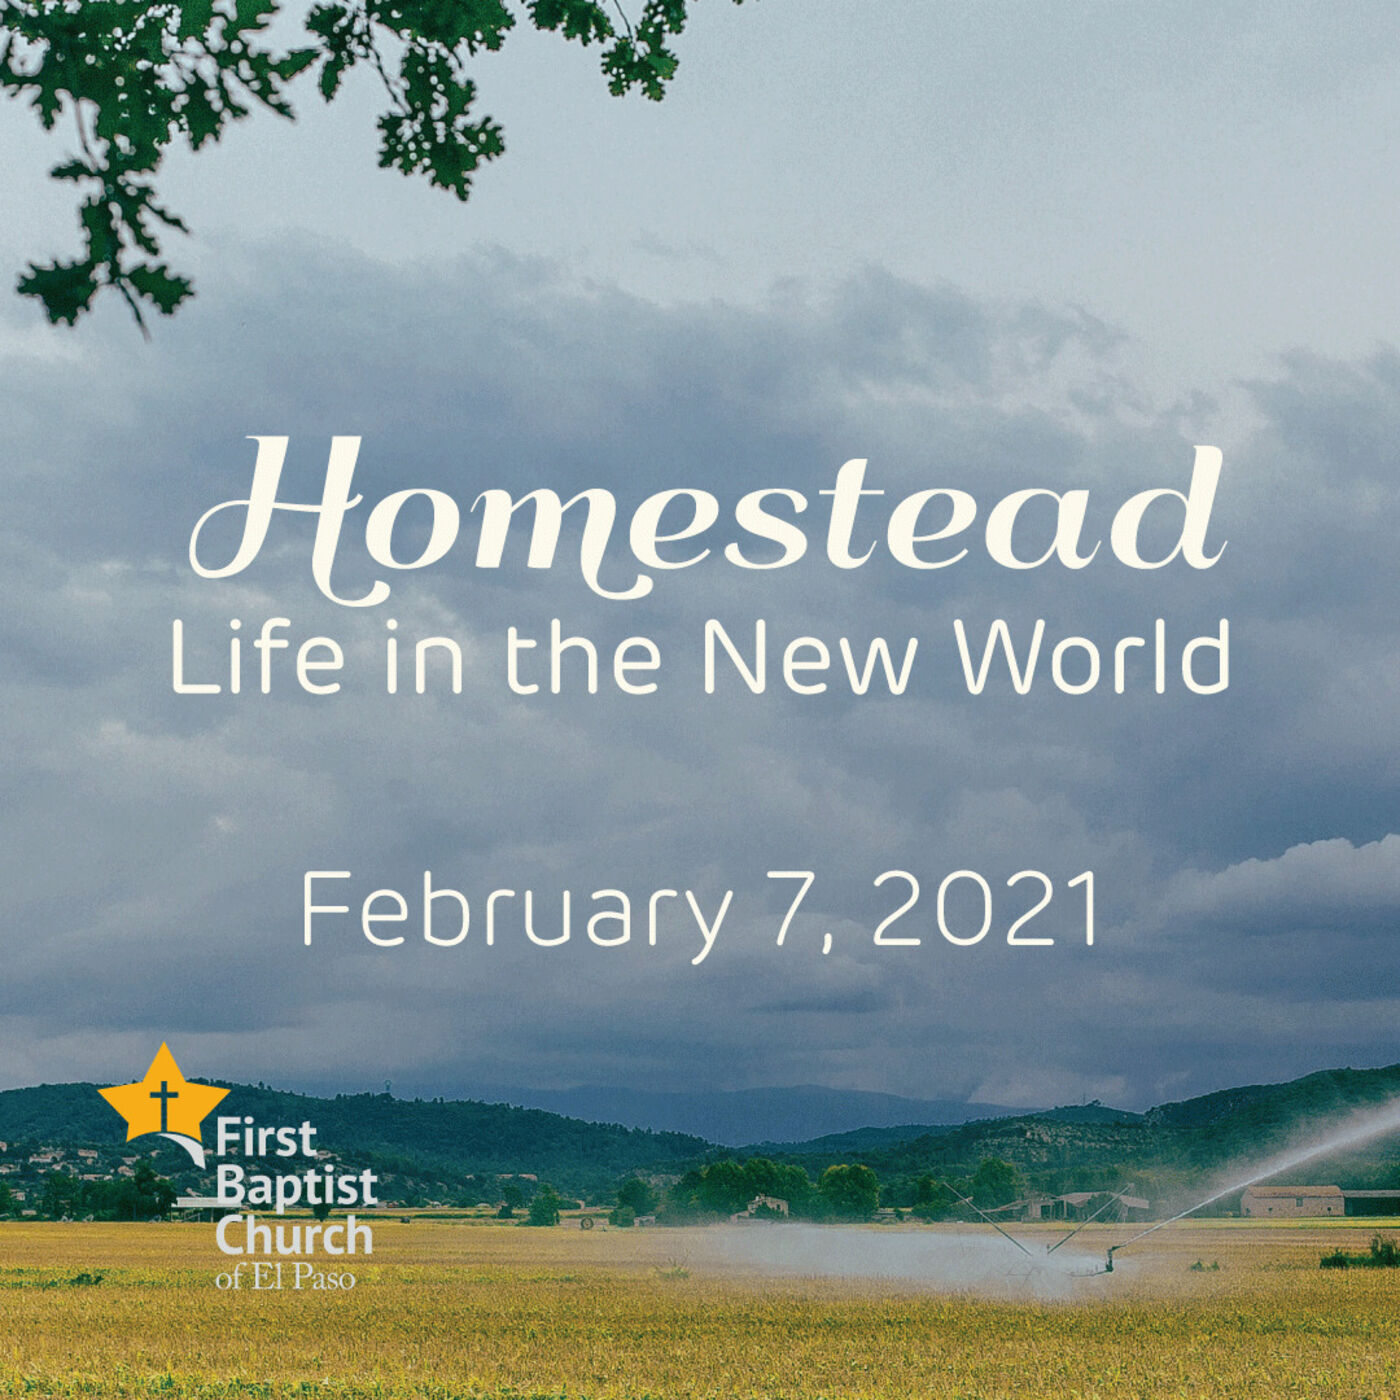 Homestead: Life in the New World